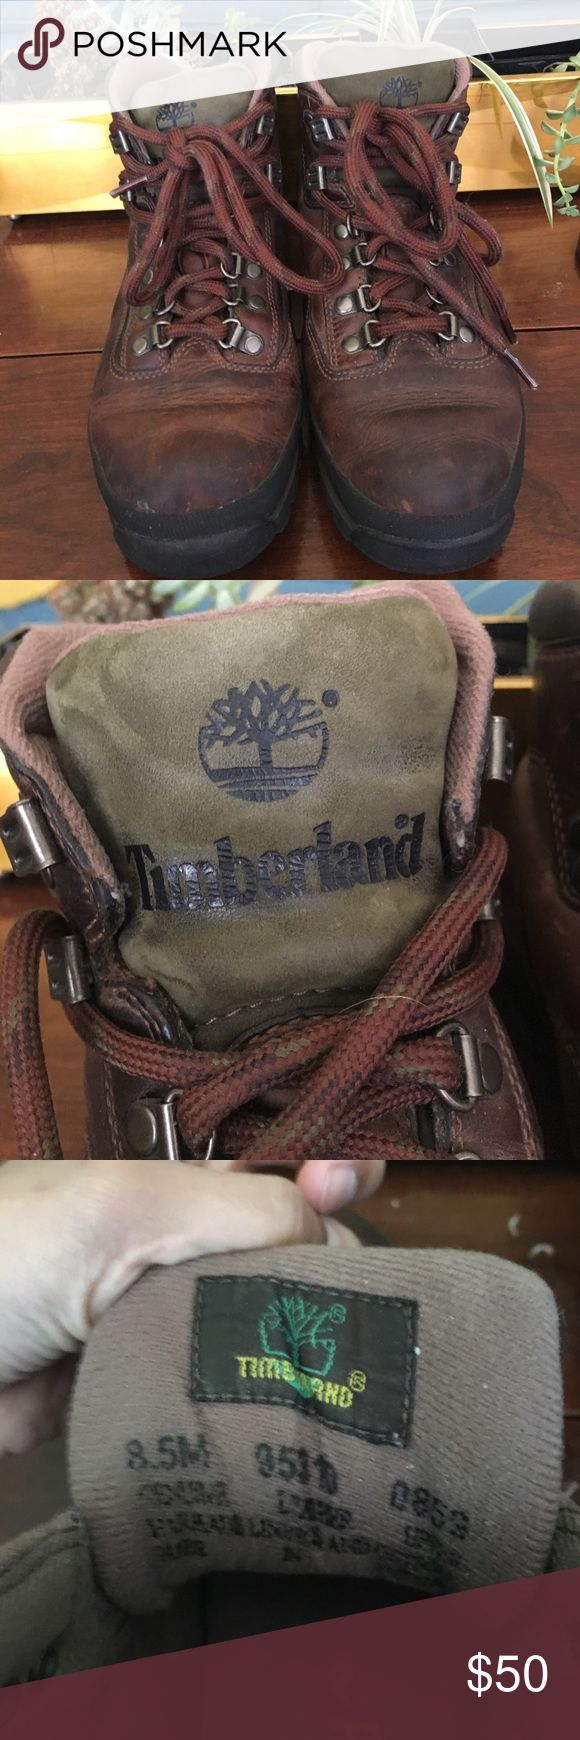 Timberland Leather Boots Excellent condition brown Timberland boots. Only a few scuffs, laces are in perfect condition. Green tongue with logo Timberland Shoes Lace Up Boots